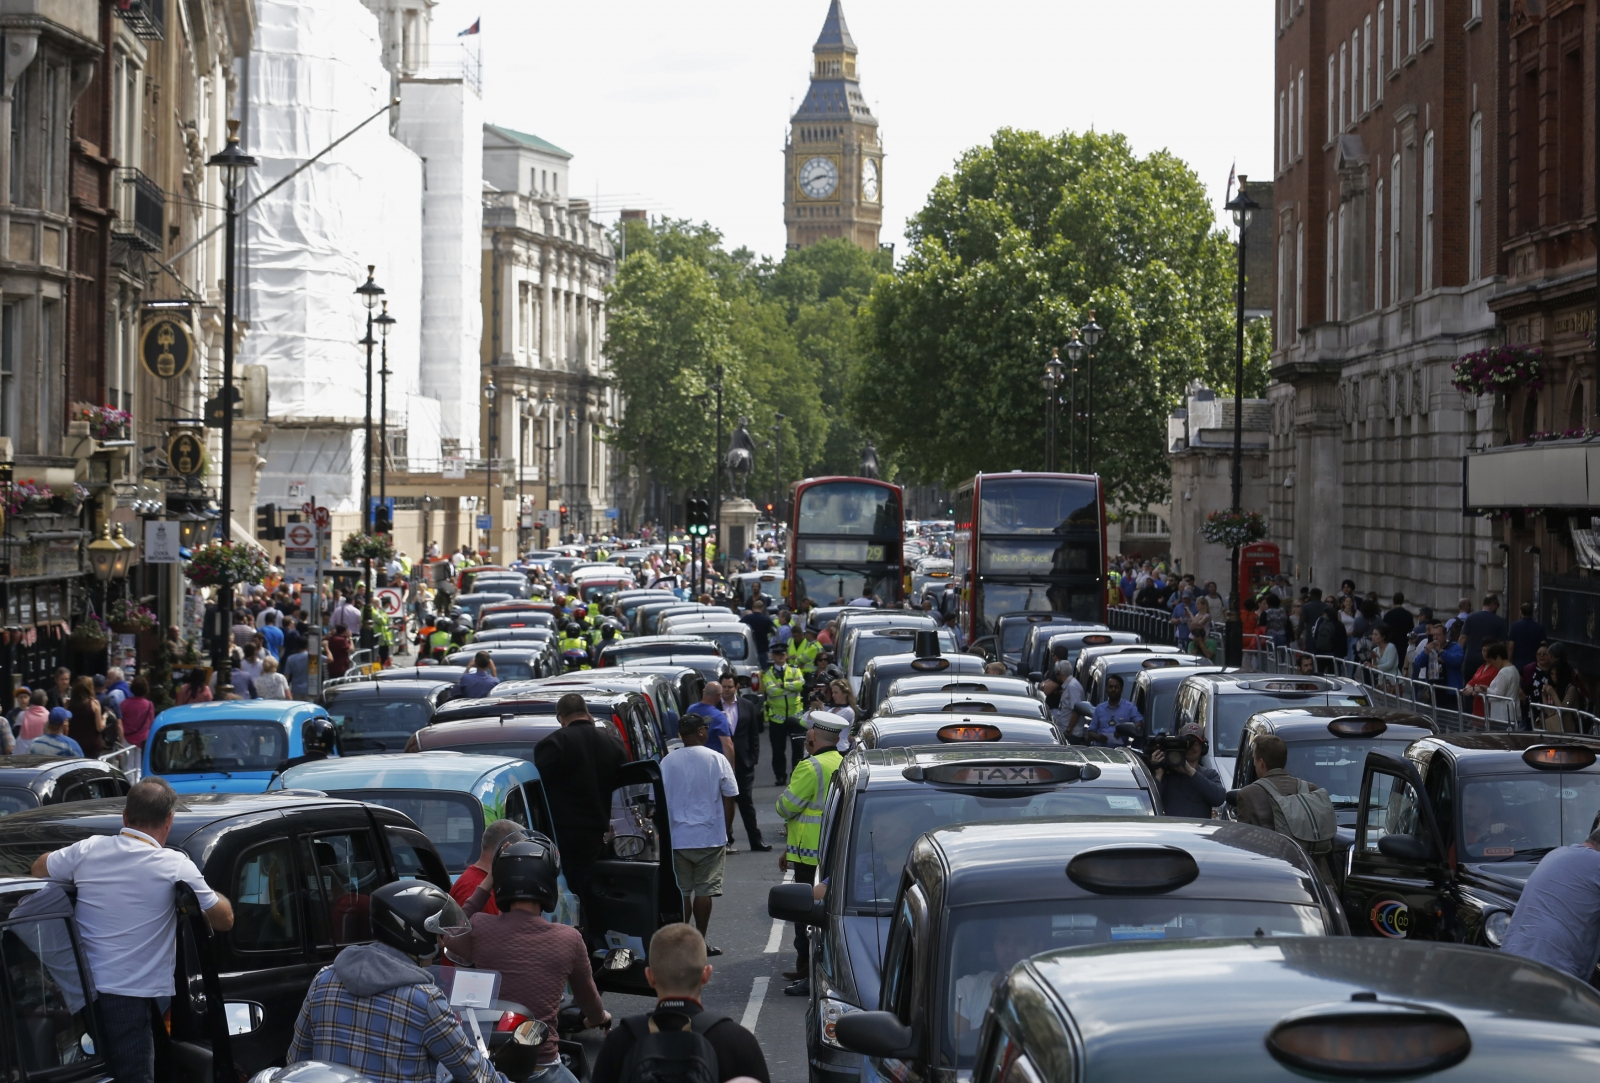 CO2 emissions - busy streets full or cars